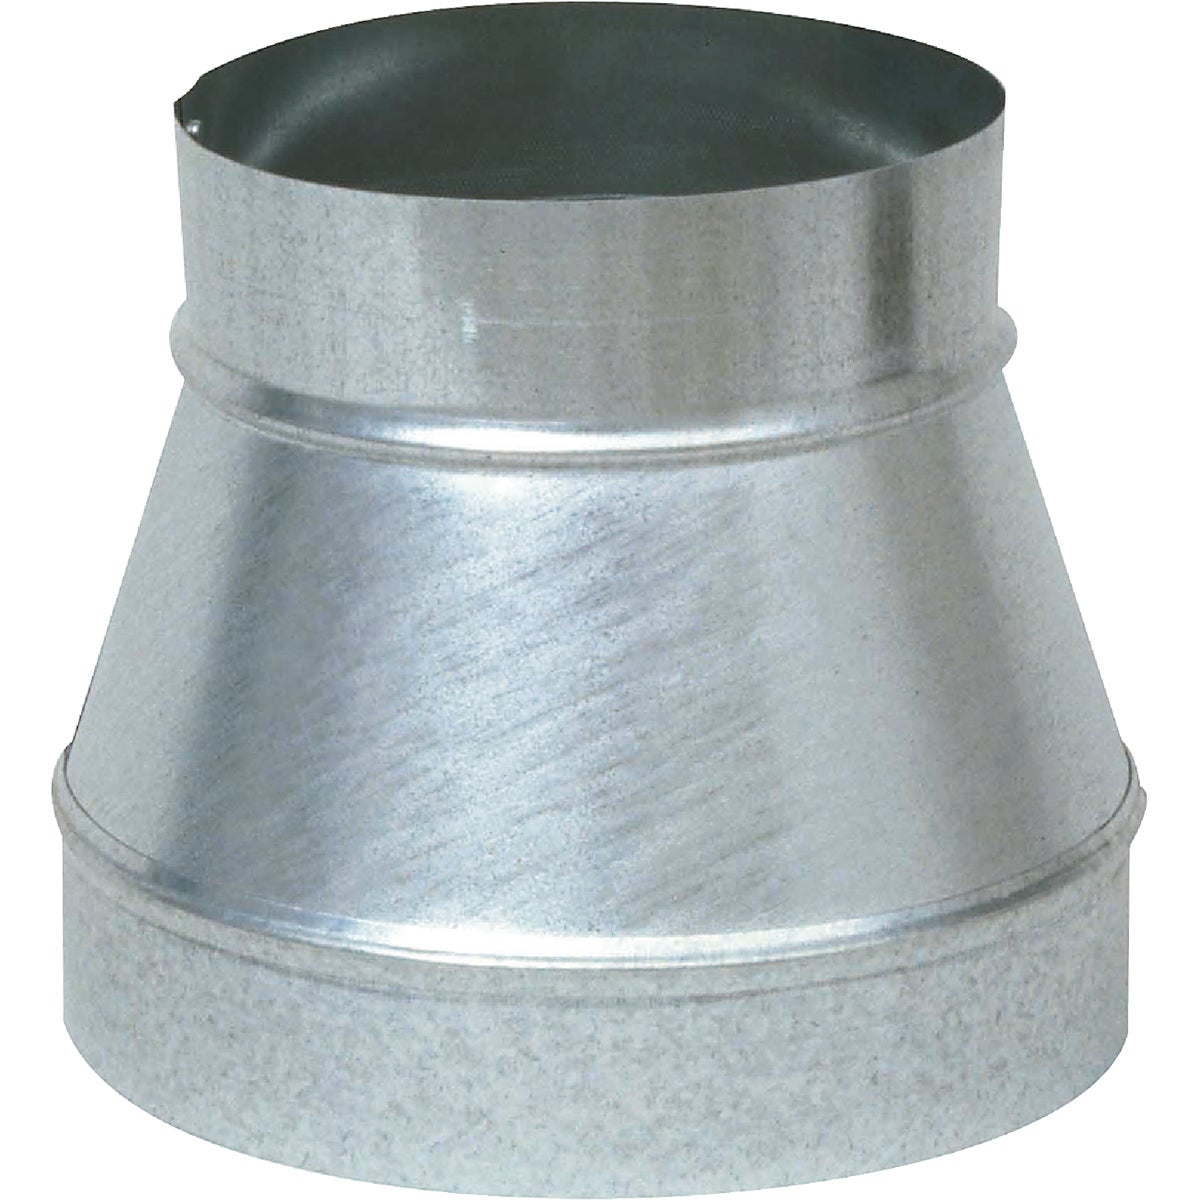 6-4 INCREASER/REDUCER - GV0782-A by Imperial Mfg Group